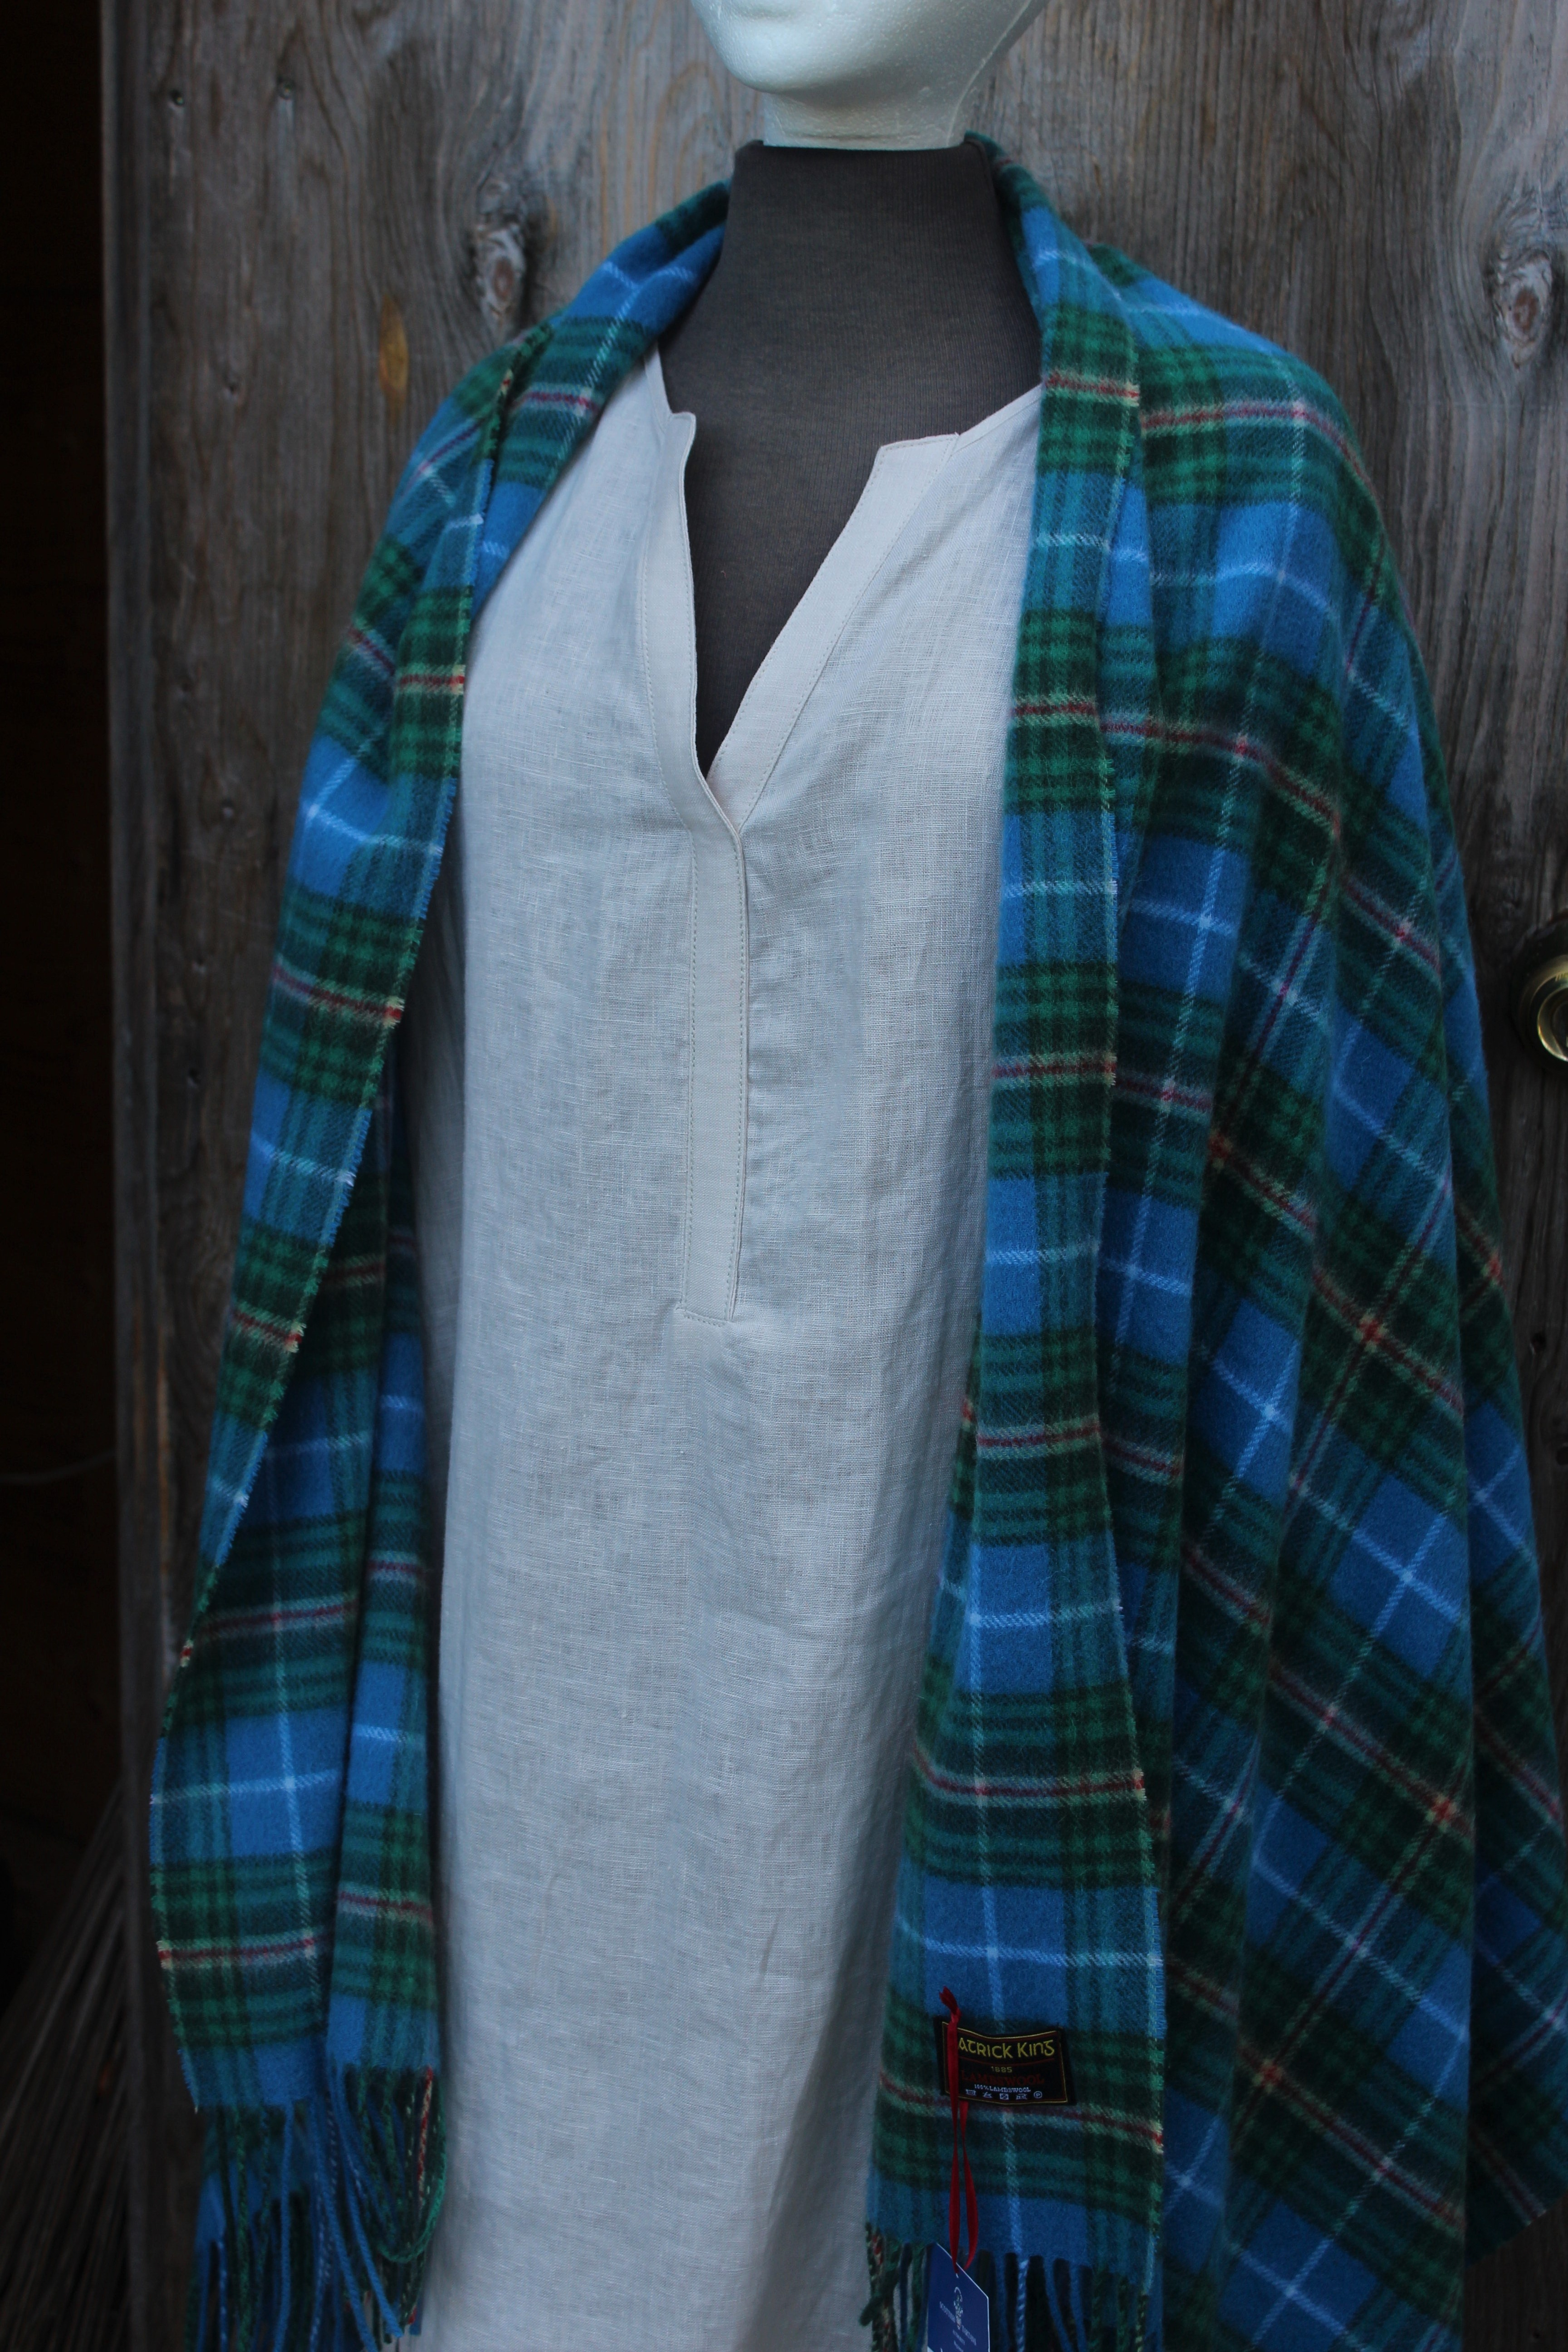 Nova Scotia Tartan Cape- $136.00 100% Lambswool, Made in Scotland Featuring Beige Linen Dress- $88.00